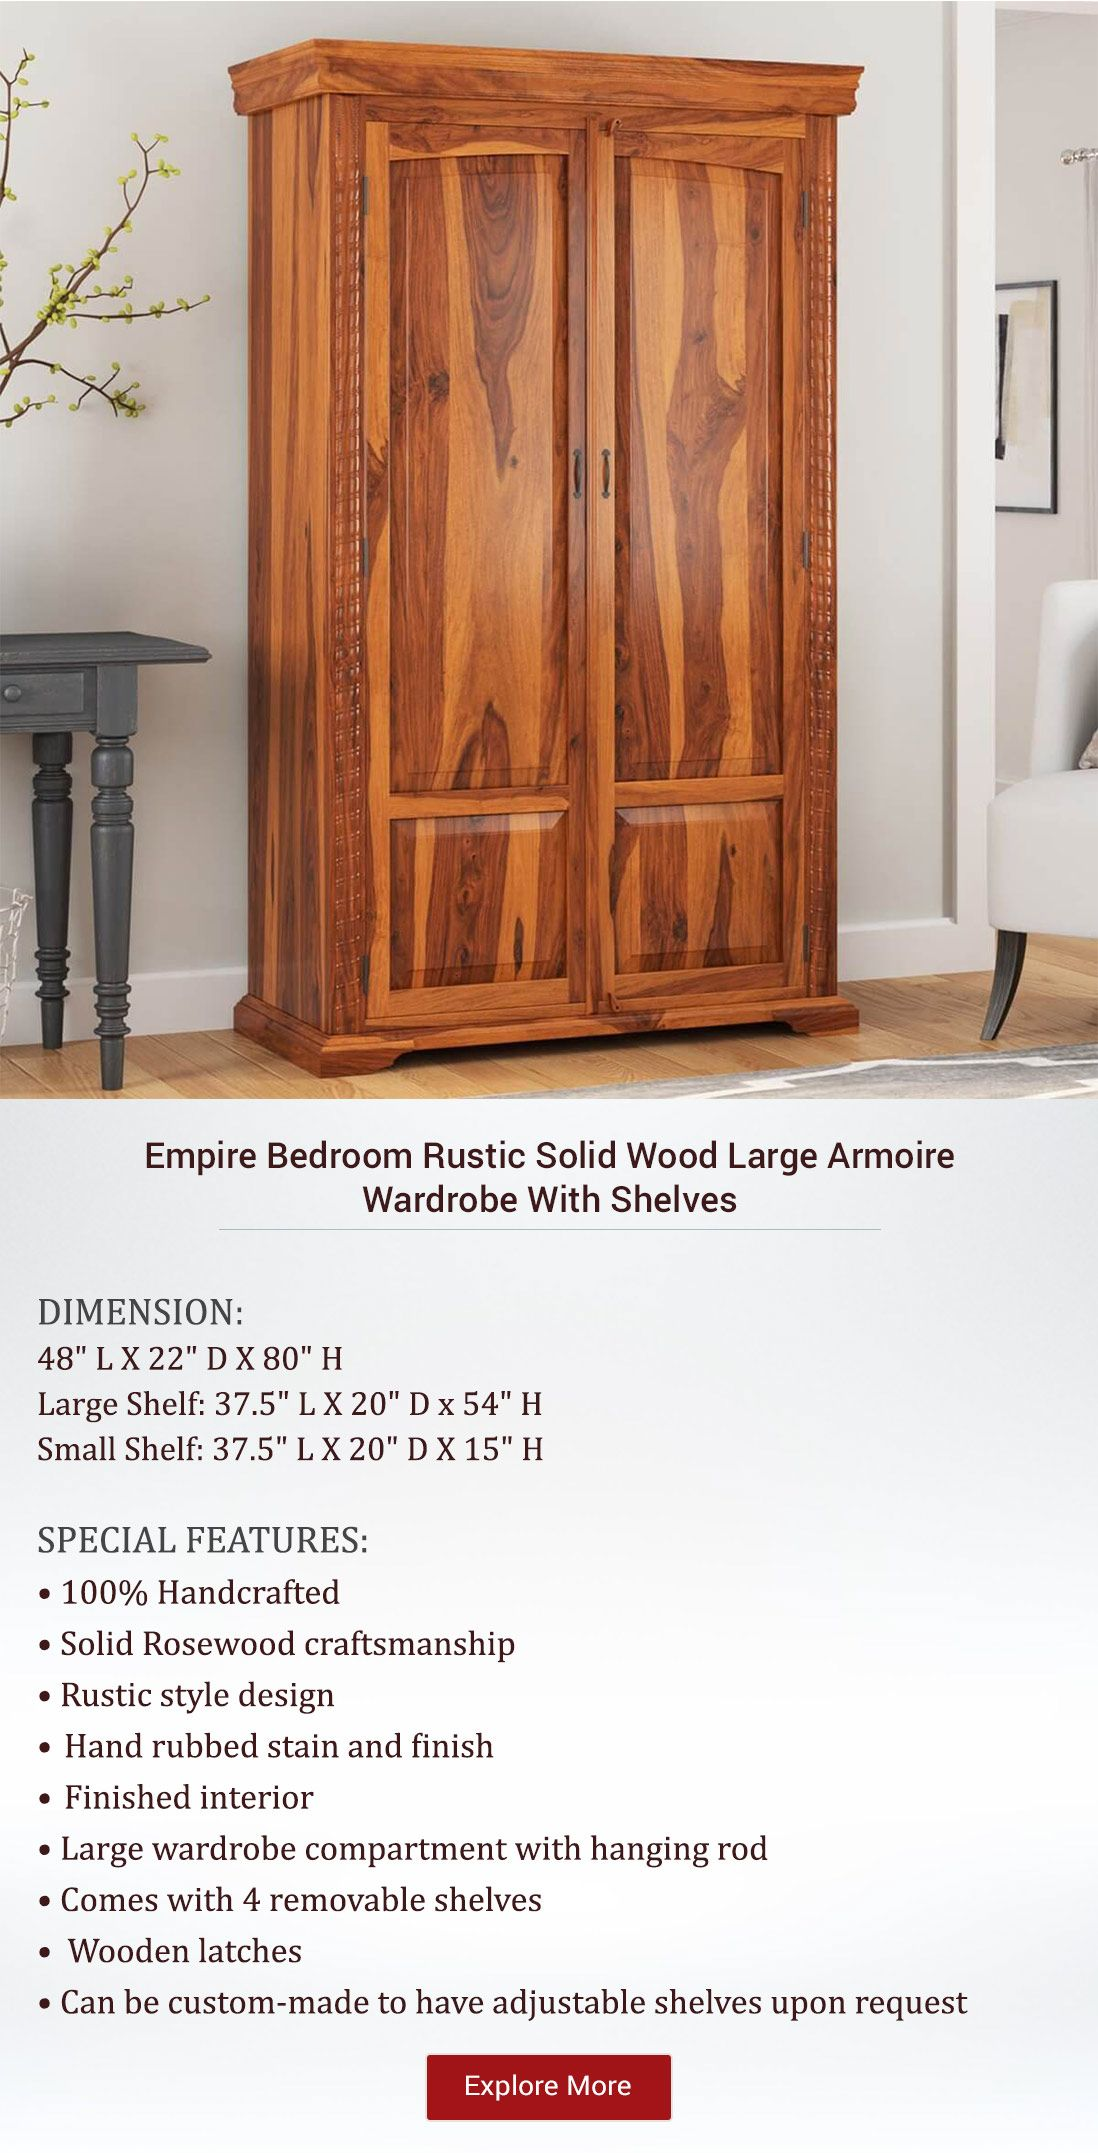 Empire Bedroom Rustic Solid Wood Large Armoire Wardrobe With Shelves Rustic Bedroom Wardrobe Armoire Shelves